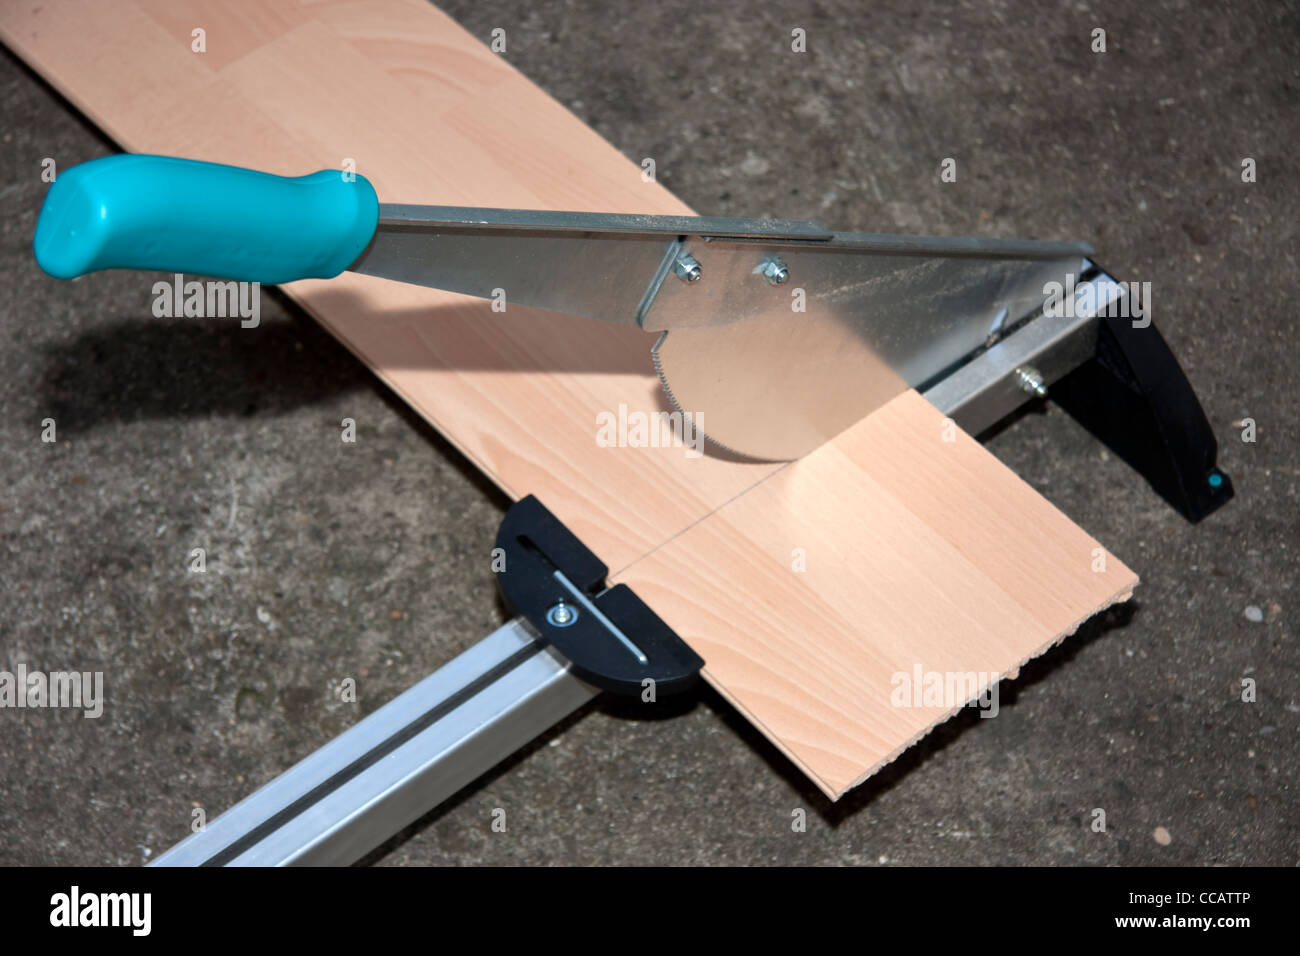 Cutting machine for laminate - Stock Image